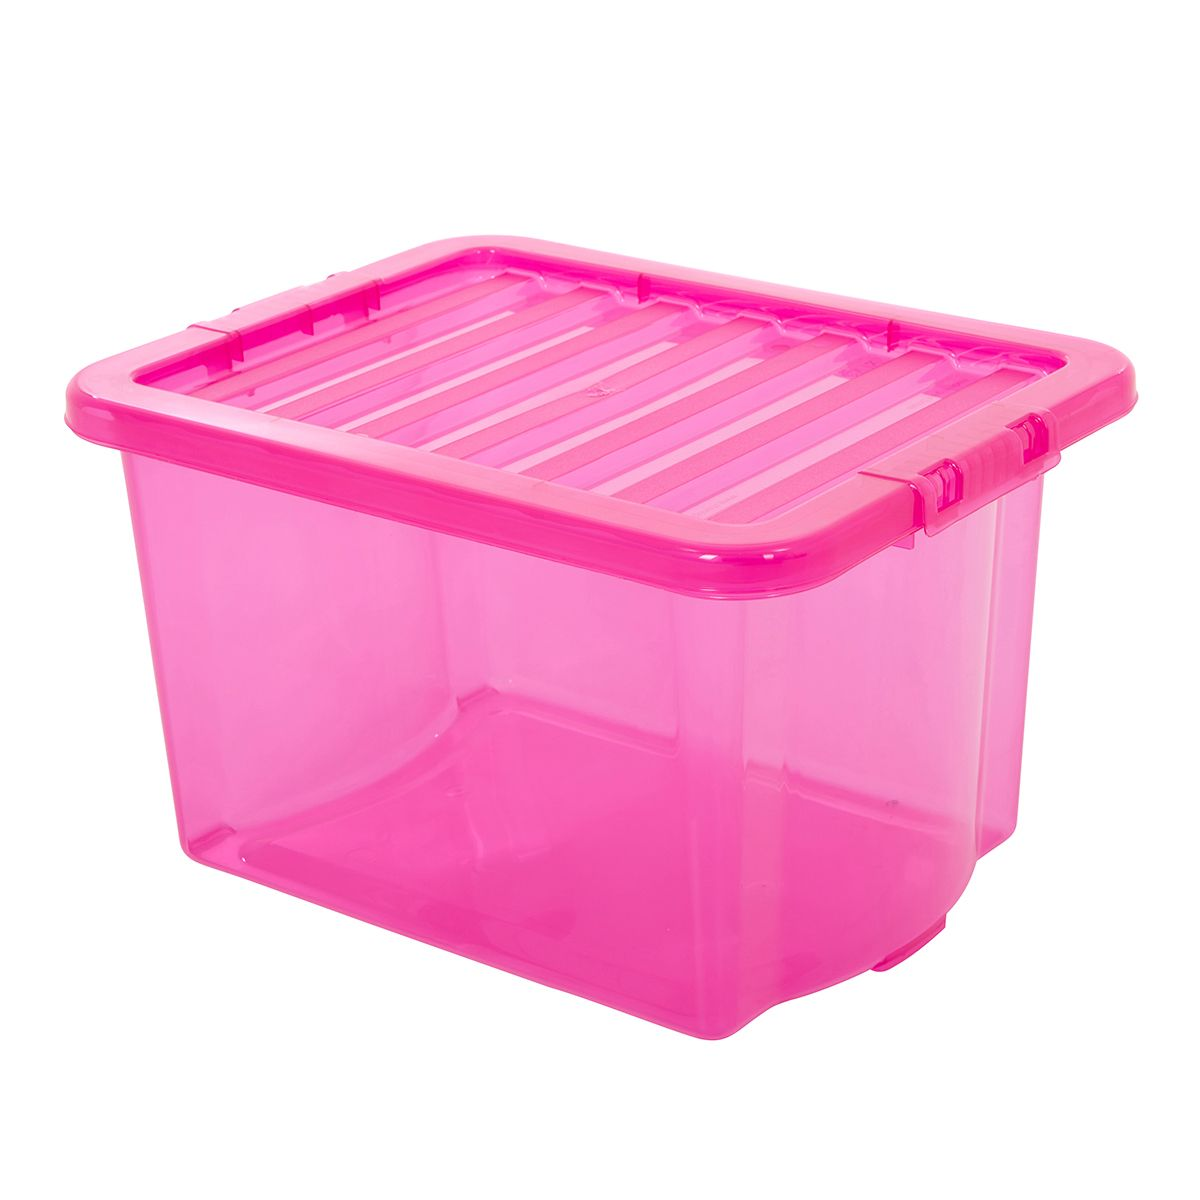 Acrylic Boxes With Lids Uk : Pink plastic storage boxes with clip on lids value